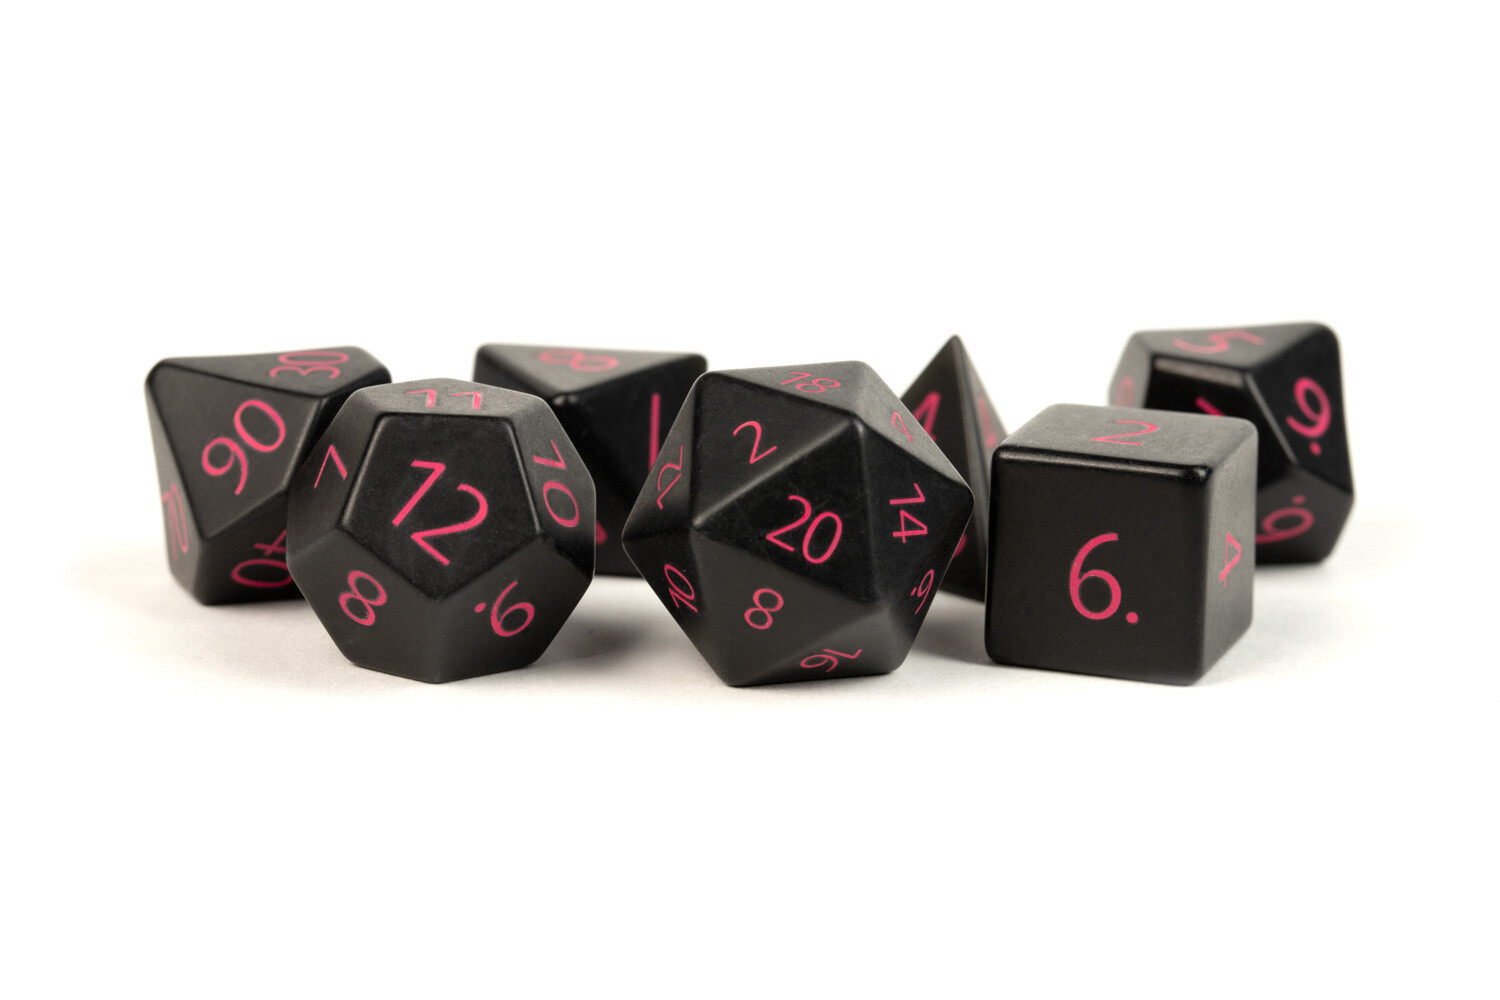 Engraved Black Obsidian with Purple Numbers: Full-Sized 16mm Polyhedral Dice Set